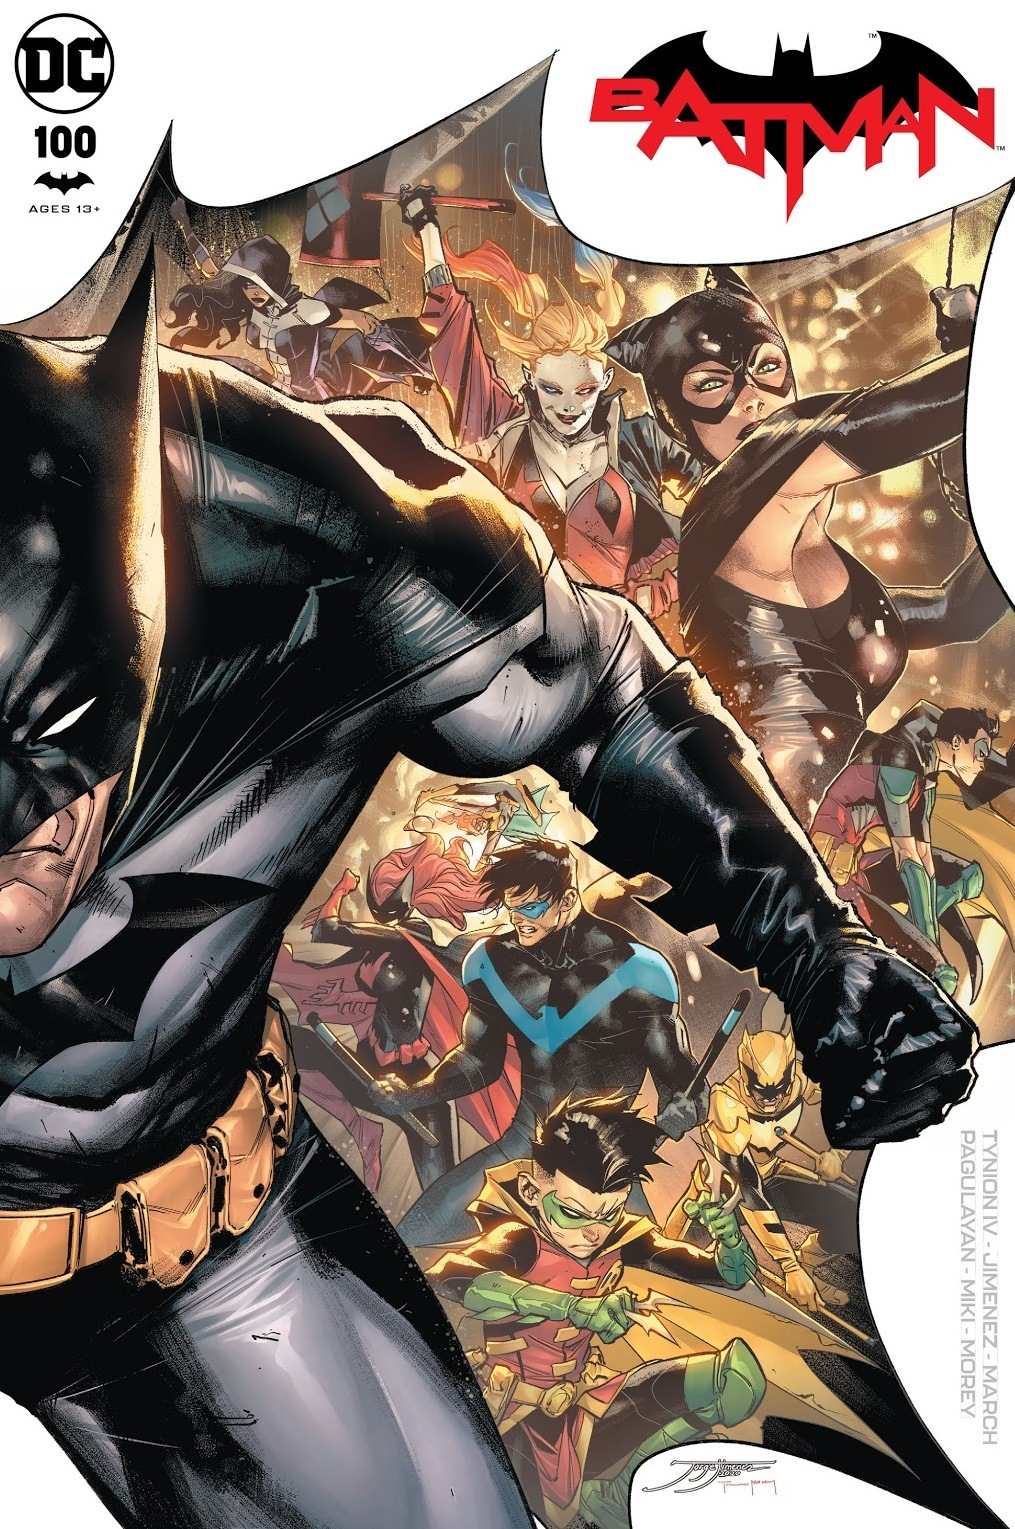 Batman Issue 100 review